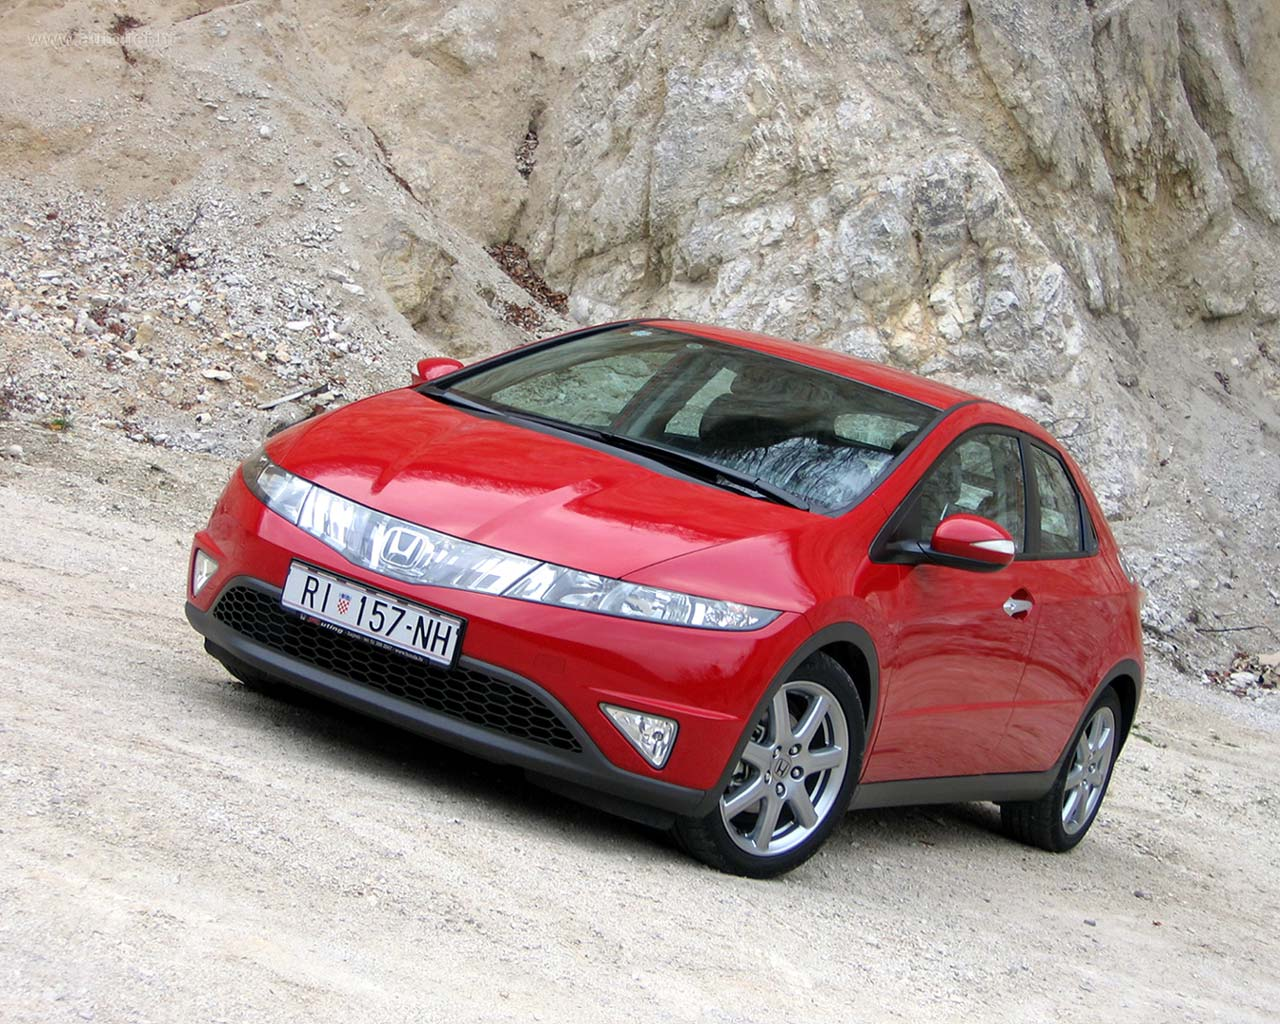 Honda Civic: 06 фото